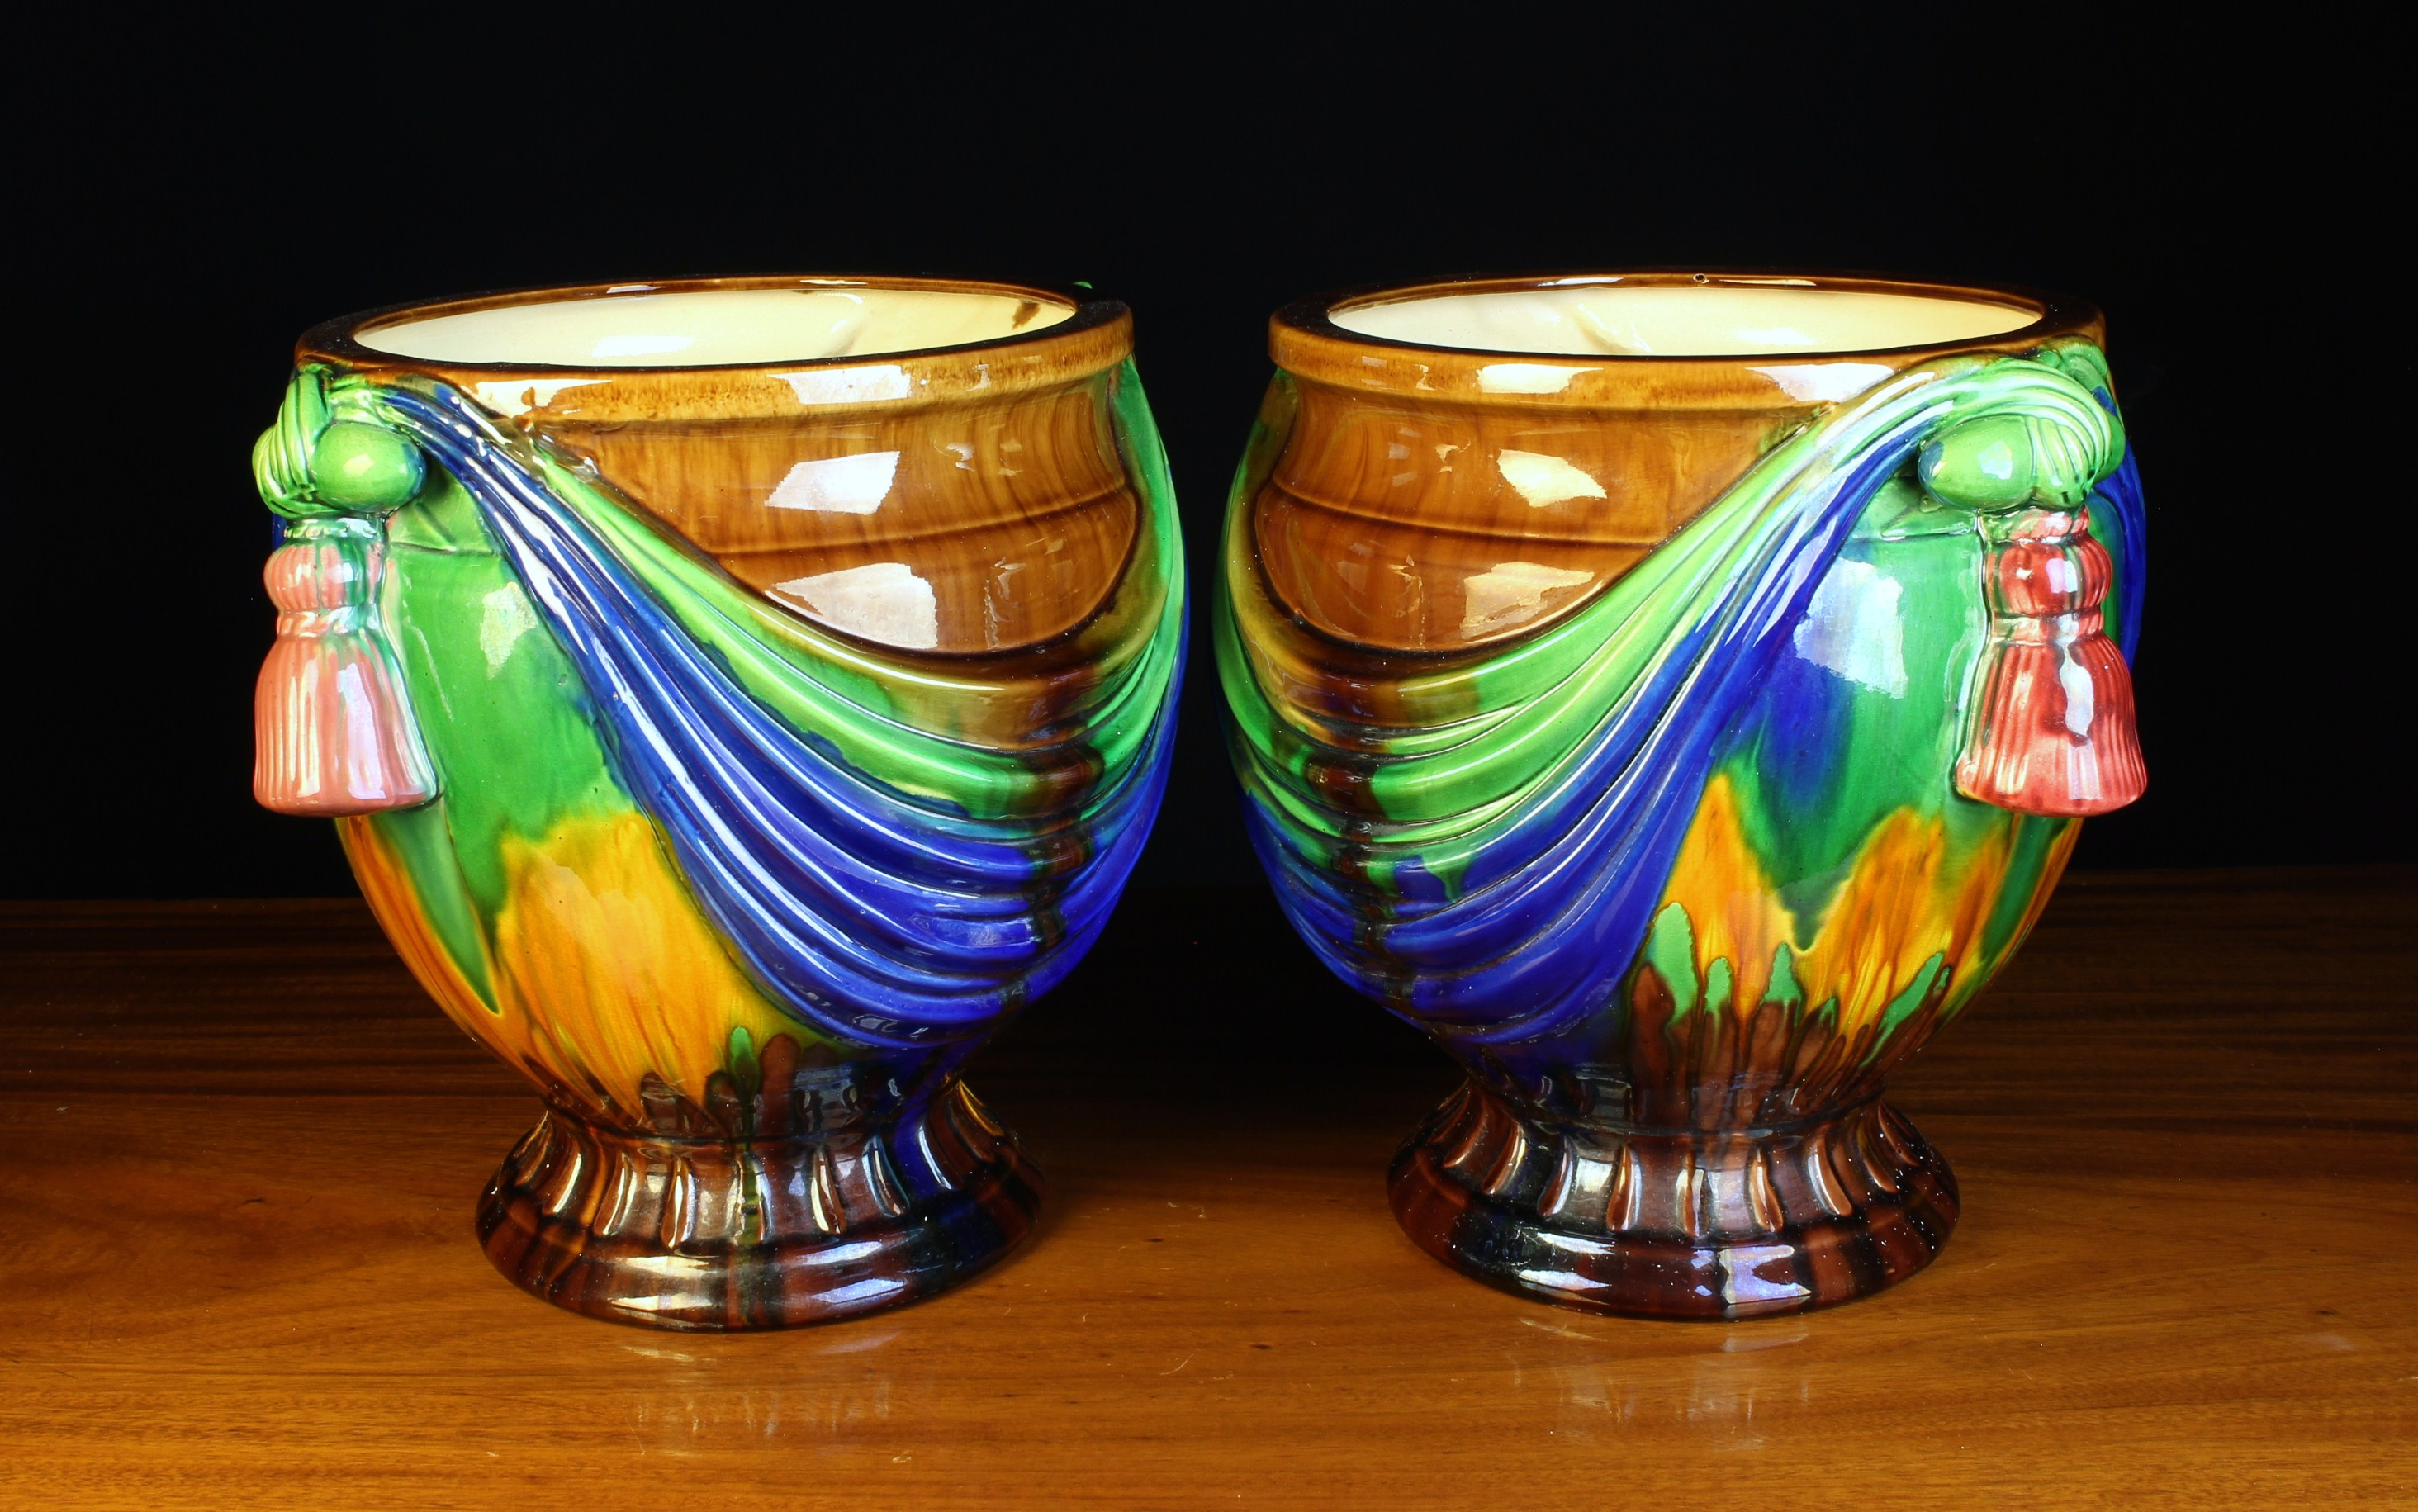 A Pair of Vintage Majolica Jardinieres moulded with swagged drapery between pendant tassels either - Image 2 of 2